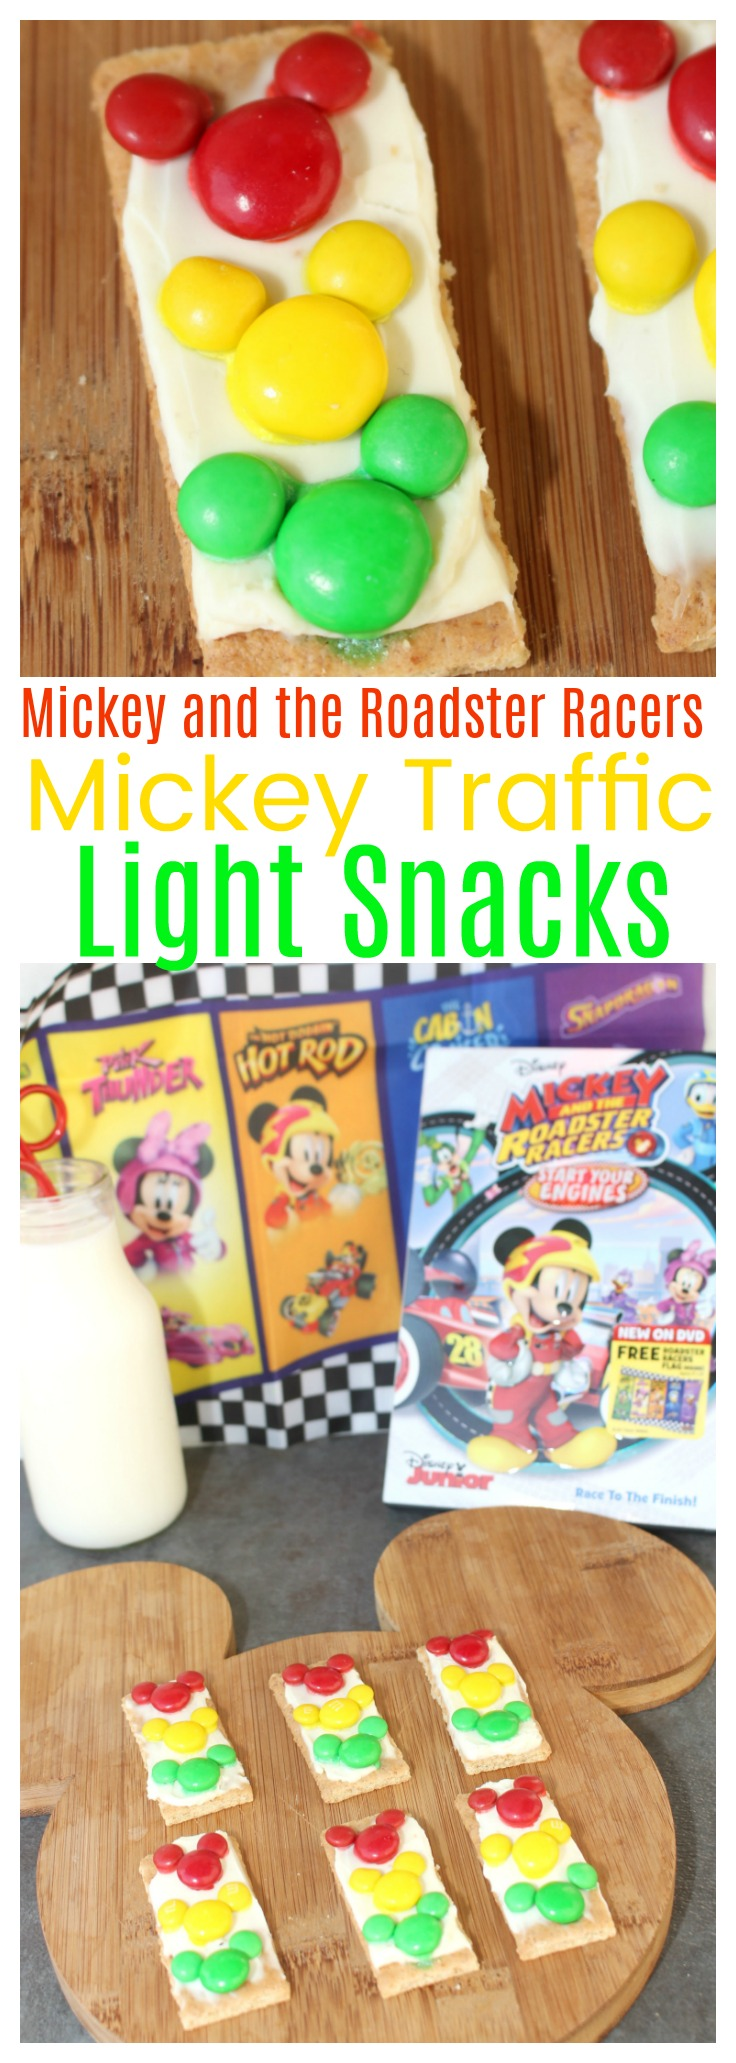 Mickey and the Roadster Racers MIckey Traffic Light Snacks